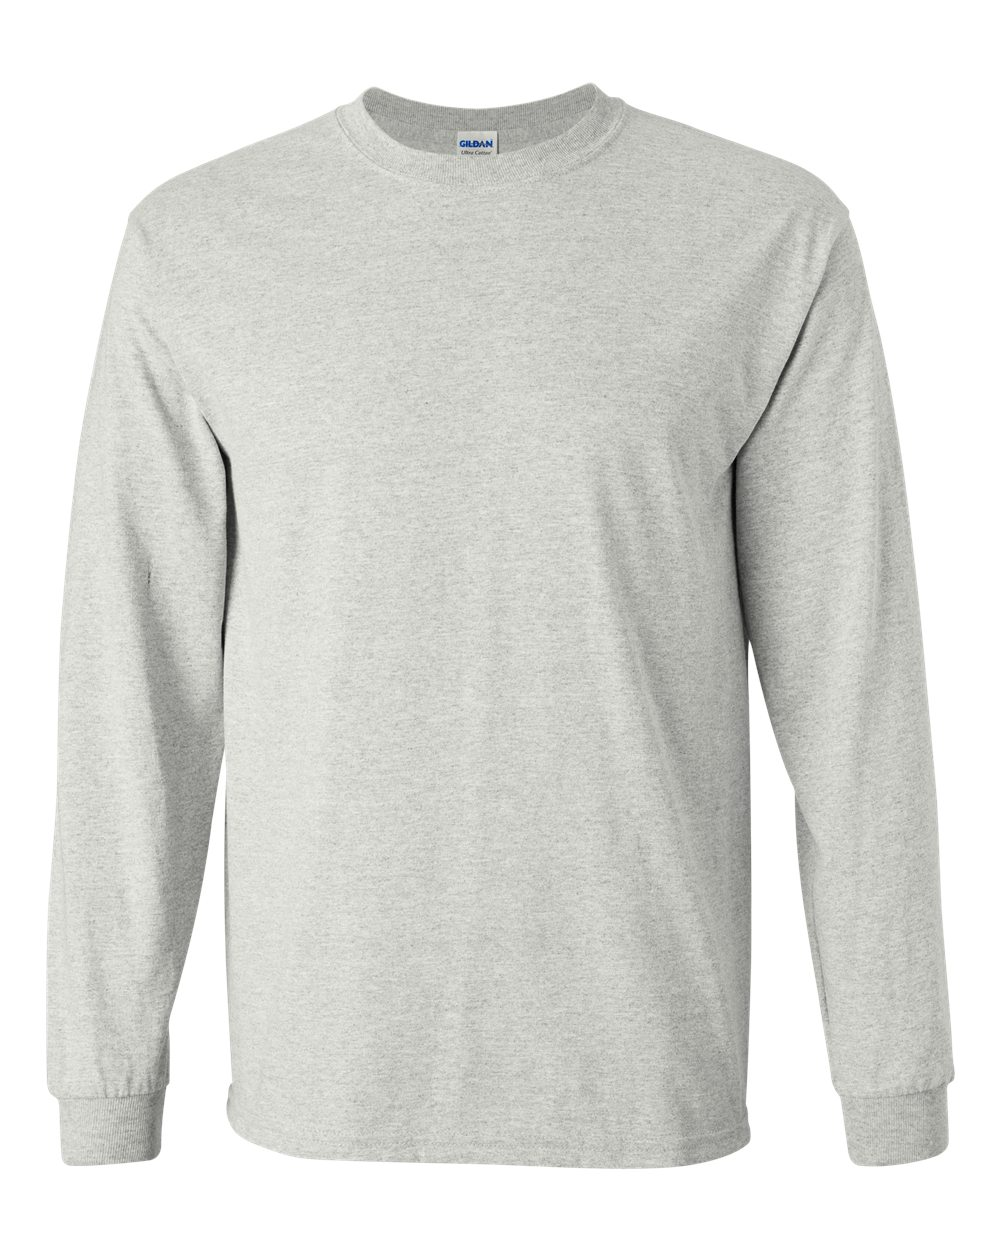 Gildan 2400 Ultra Cotton ® 100% Cotton Long Sleeve T Shirt ...